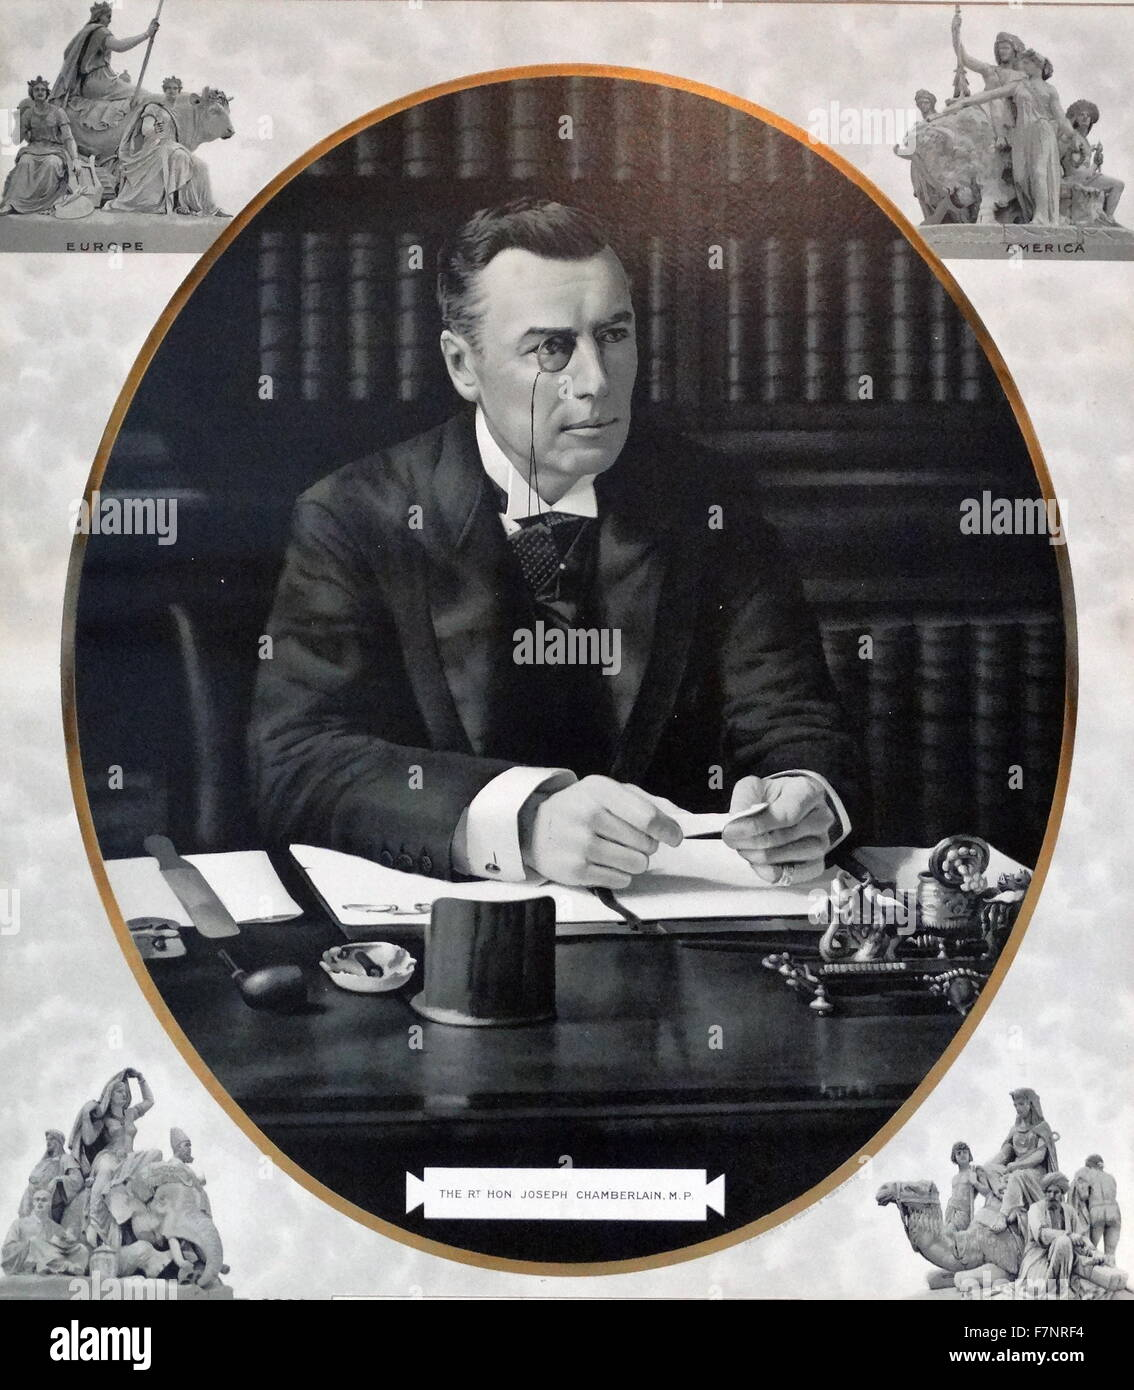 The Right Honourable Joseph Chamberlain (1836-1914) British politician and statesman. Dated 1900 - Stock Image